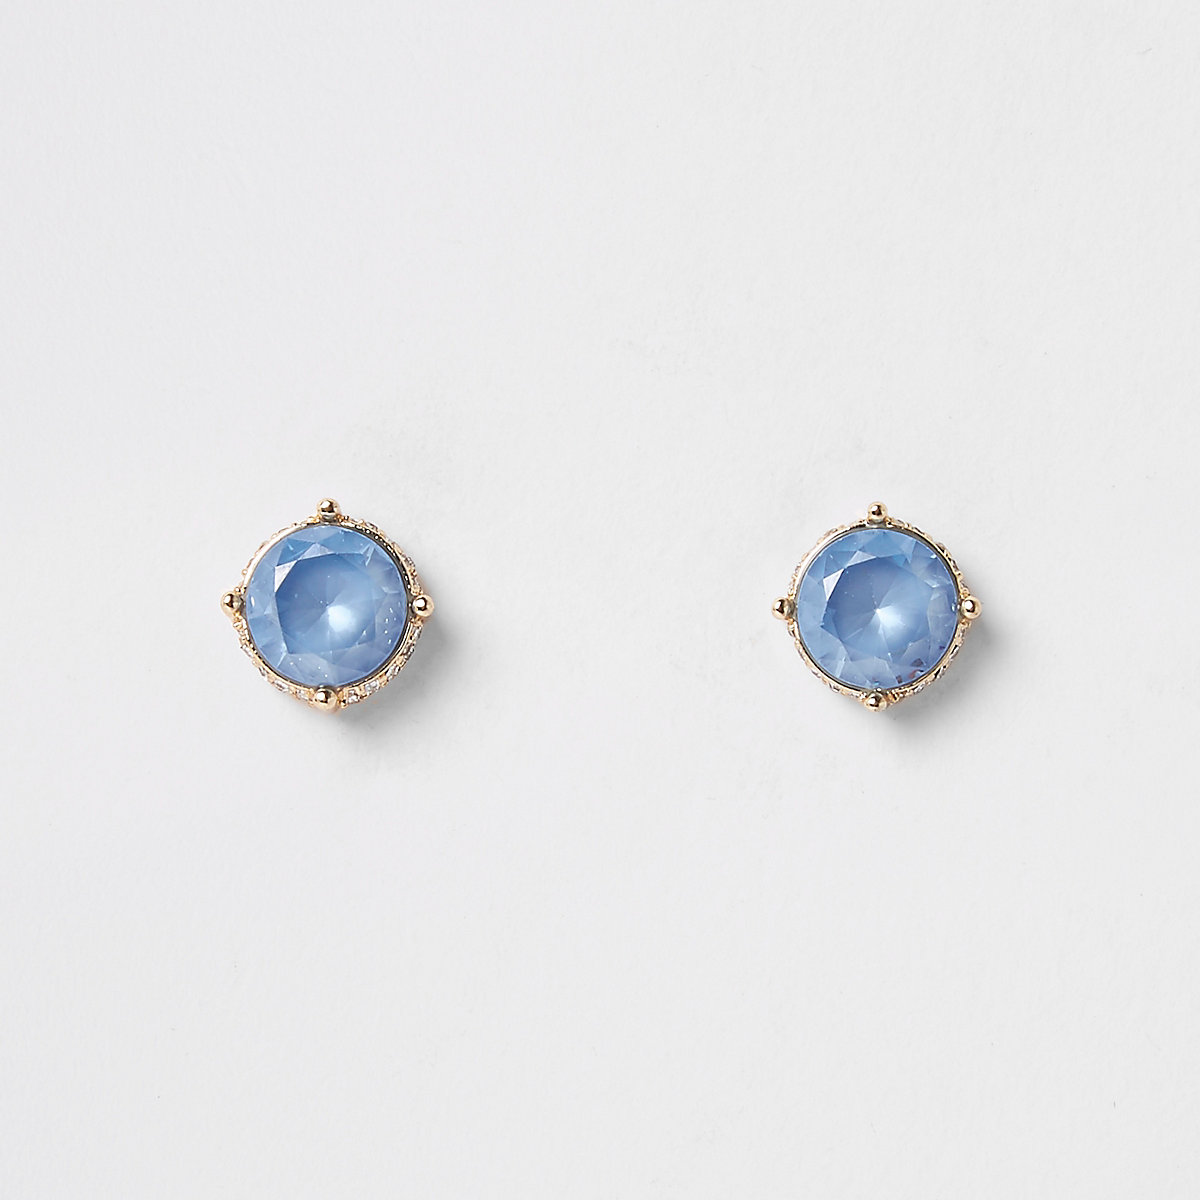 Light blue gold tone diamante pave earrings